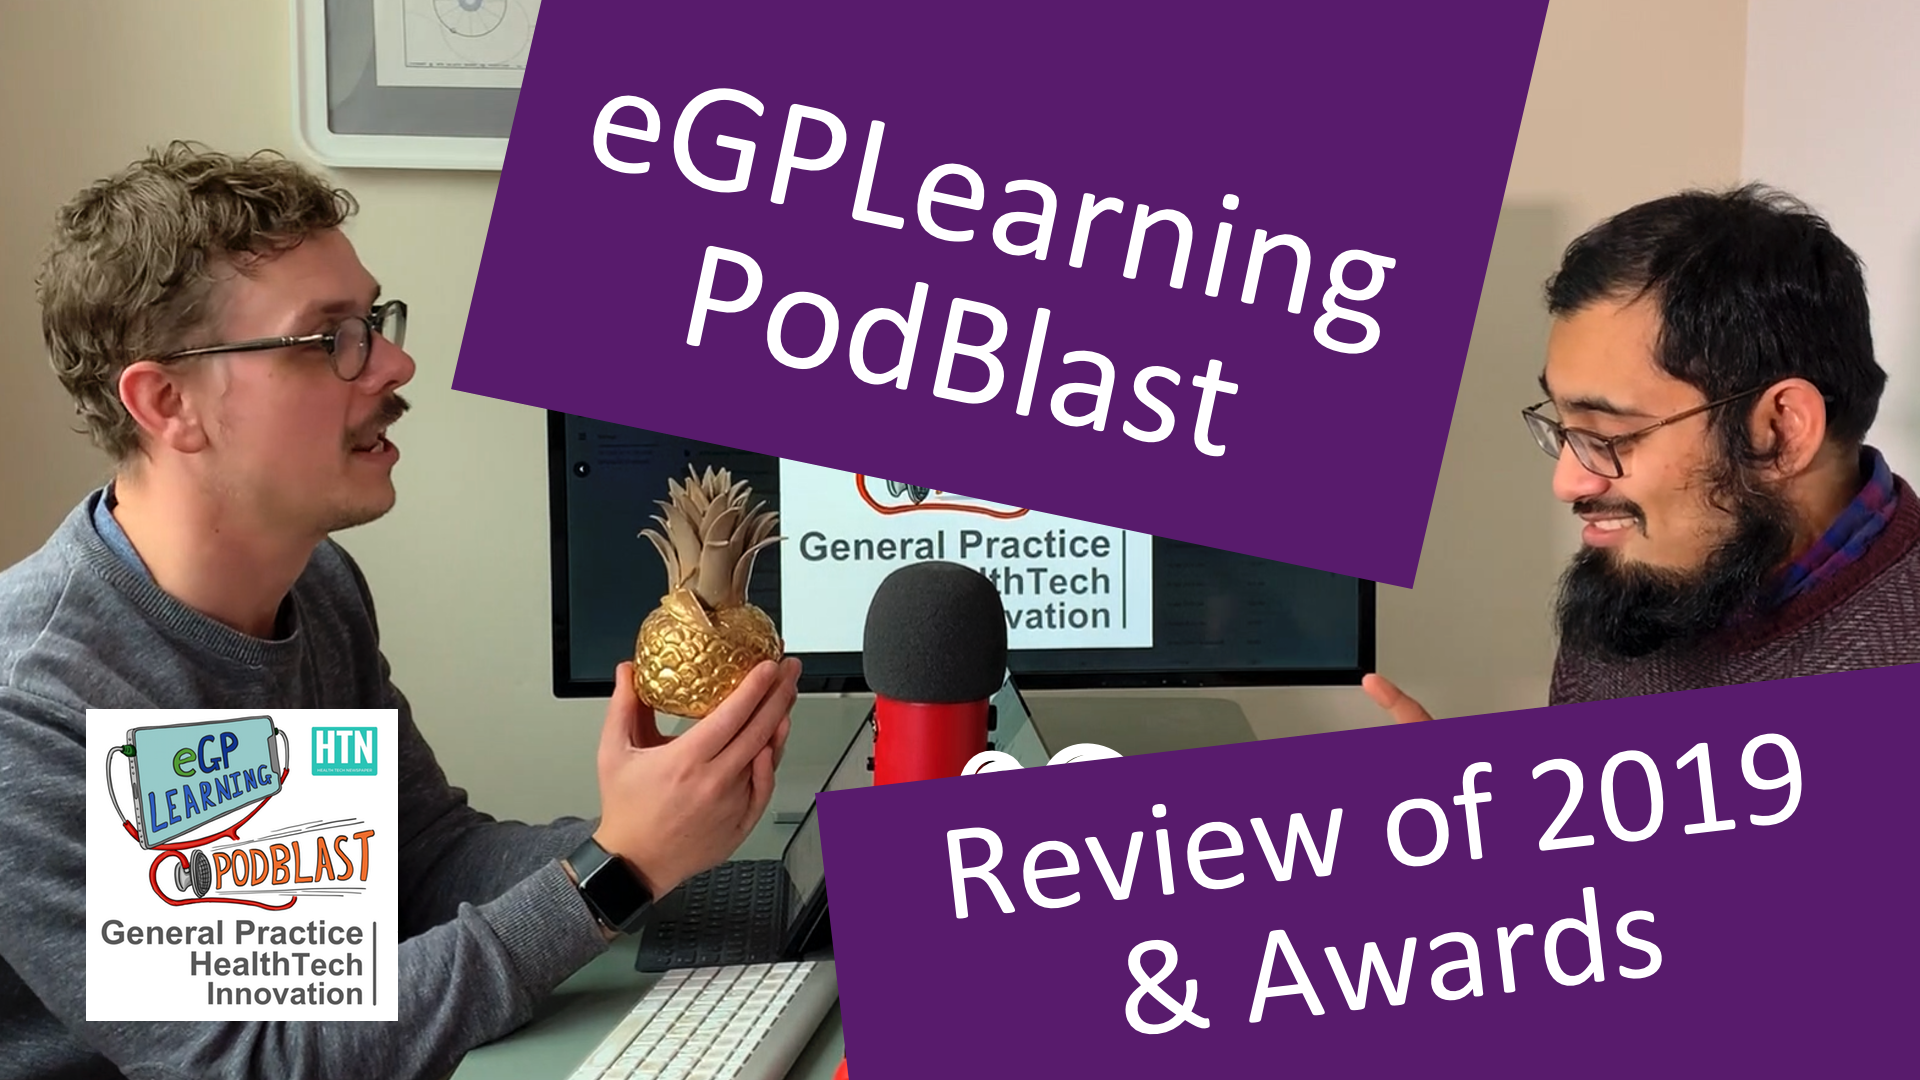 eGPlearning Podblast review 2019